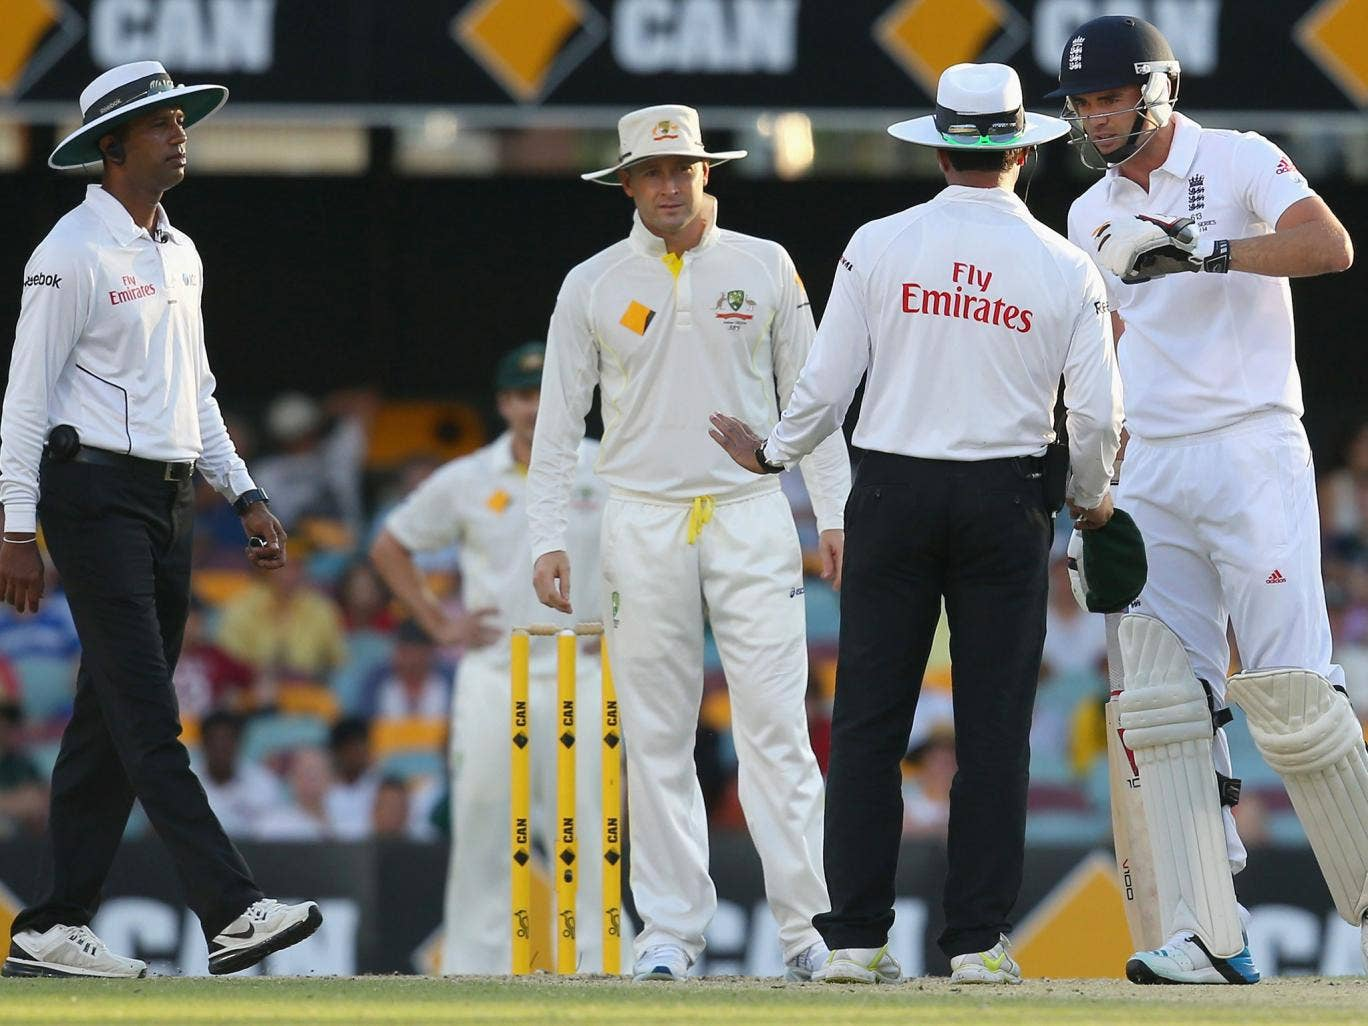 The umpires and James Anderson have words following the Englishman's spat with Michael Clarke